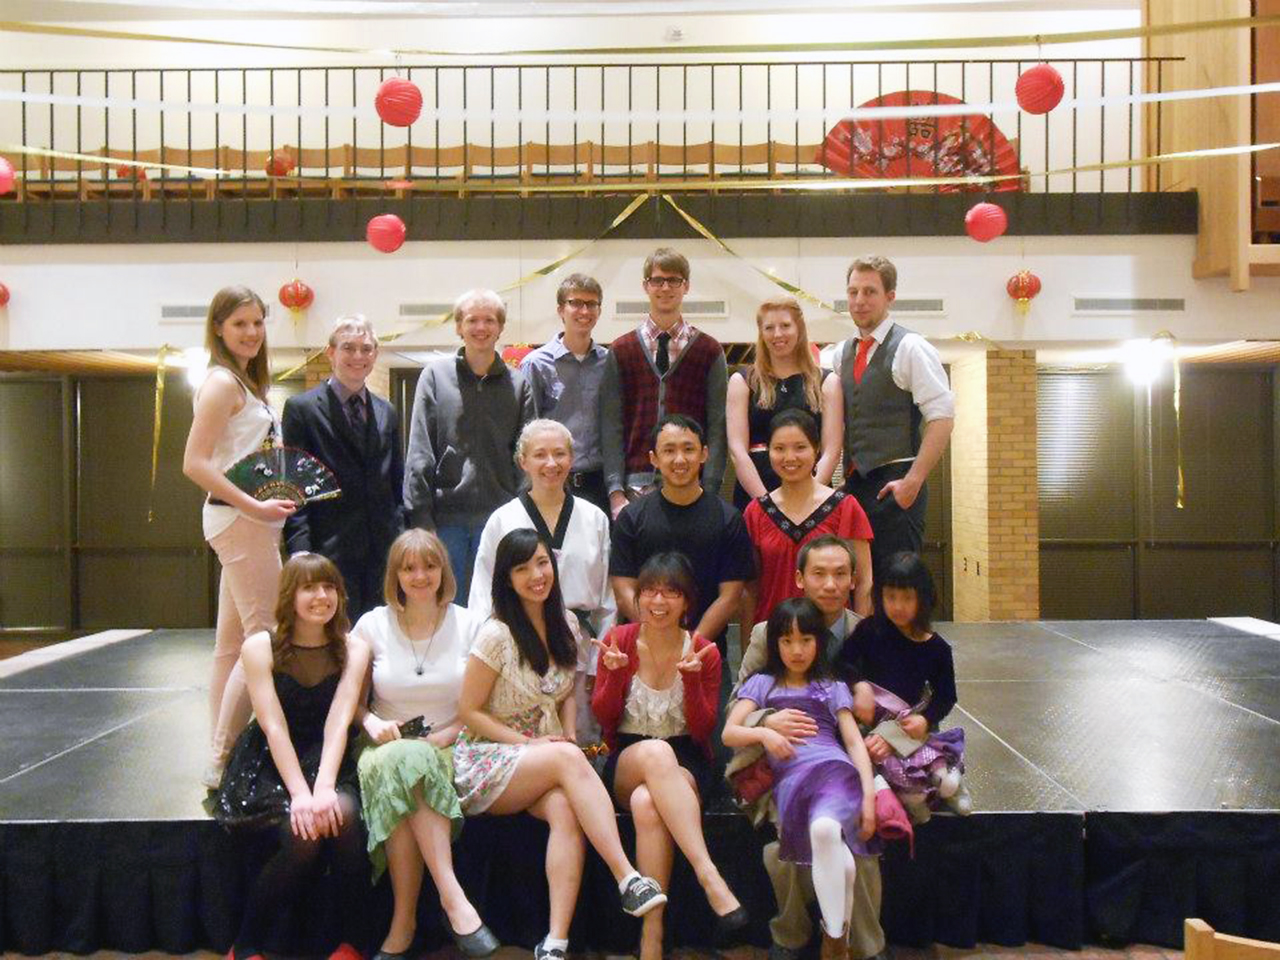 Submitted photo. The Chinese Club poses in the Centrum. Back: Sandra Schmidt, Matthew Burian, Matt Dale, Andrew Carlson, Will Merickel, Nicole Hunsicker, and John Georke. Middle: Erin Bjerke, Xao Vang, Joy Donovan. Front: Elise Woodwick, Briana Johnson, Andrea Akatsuka, Sarah Zhang, Iris Ming, Dr. Tao Ming, and Vivian Ming